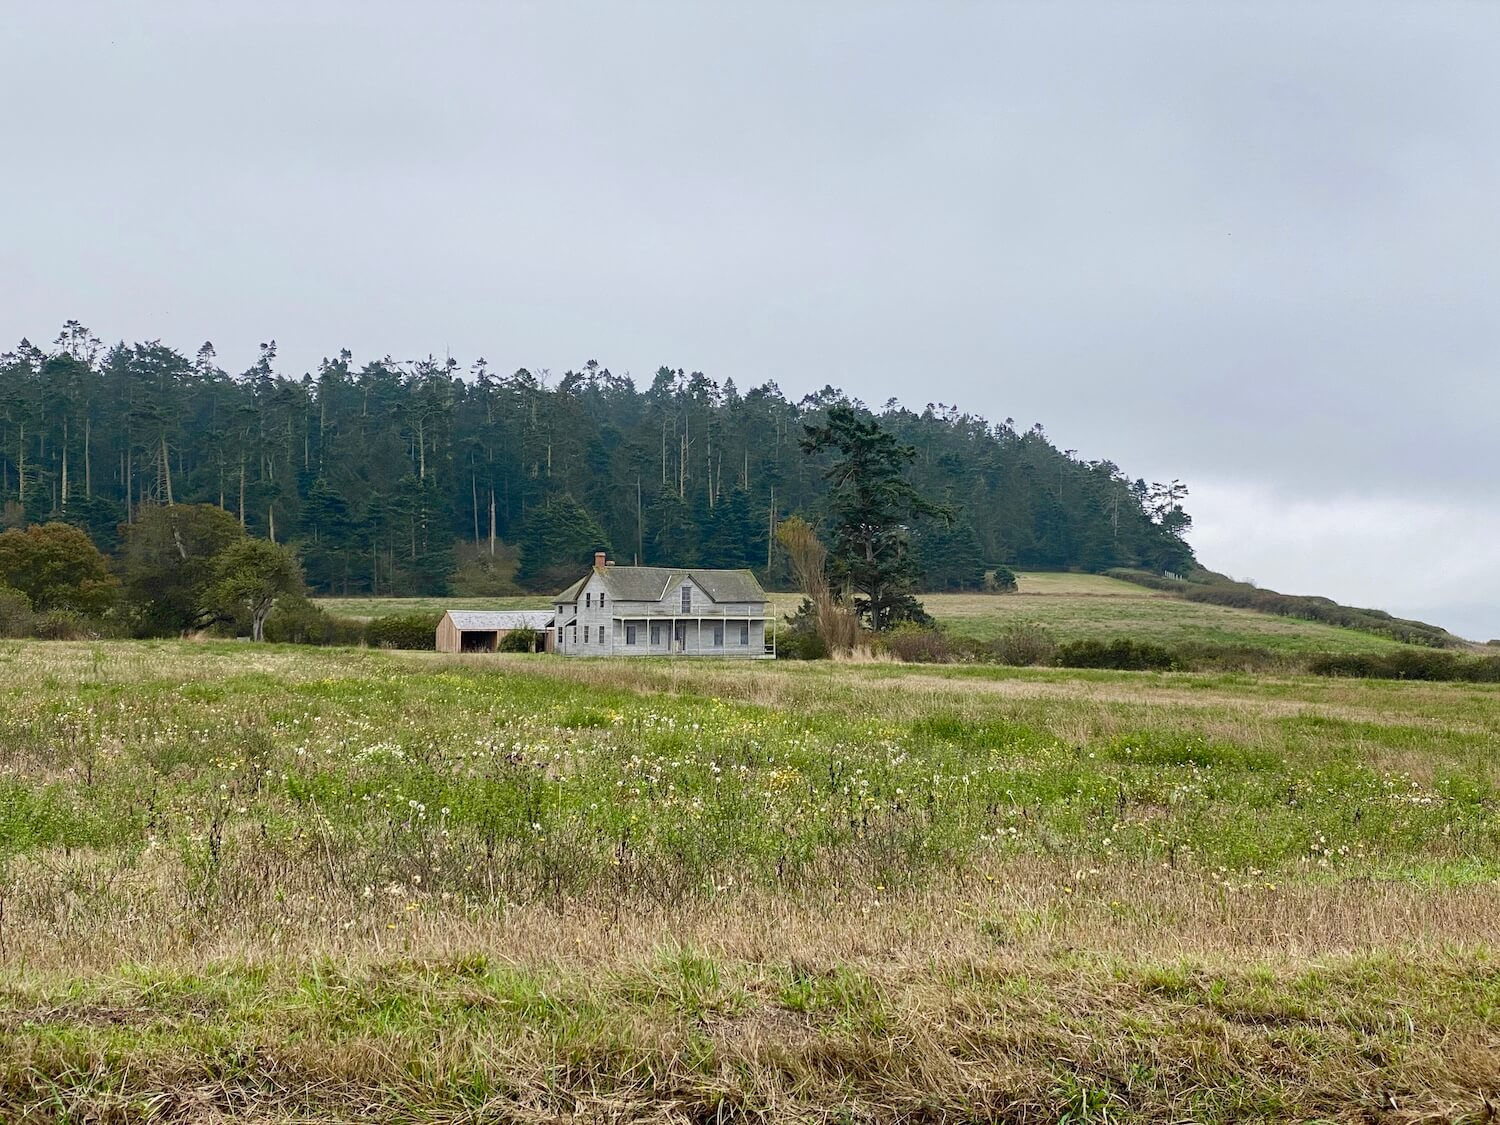 A lone home sits on a large piece of land covered with grass crops that lead to a forest in the background. The sky is gray.